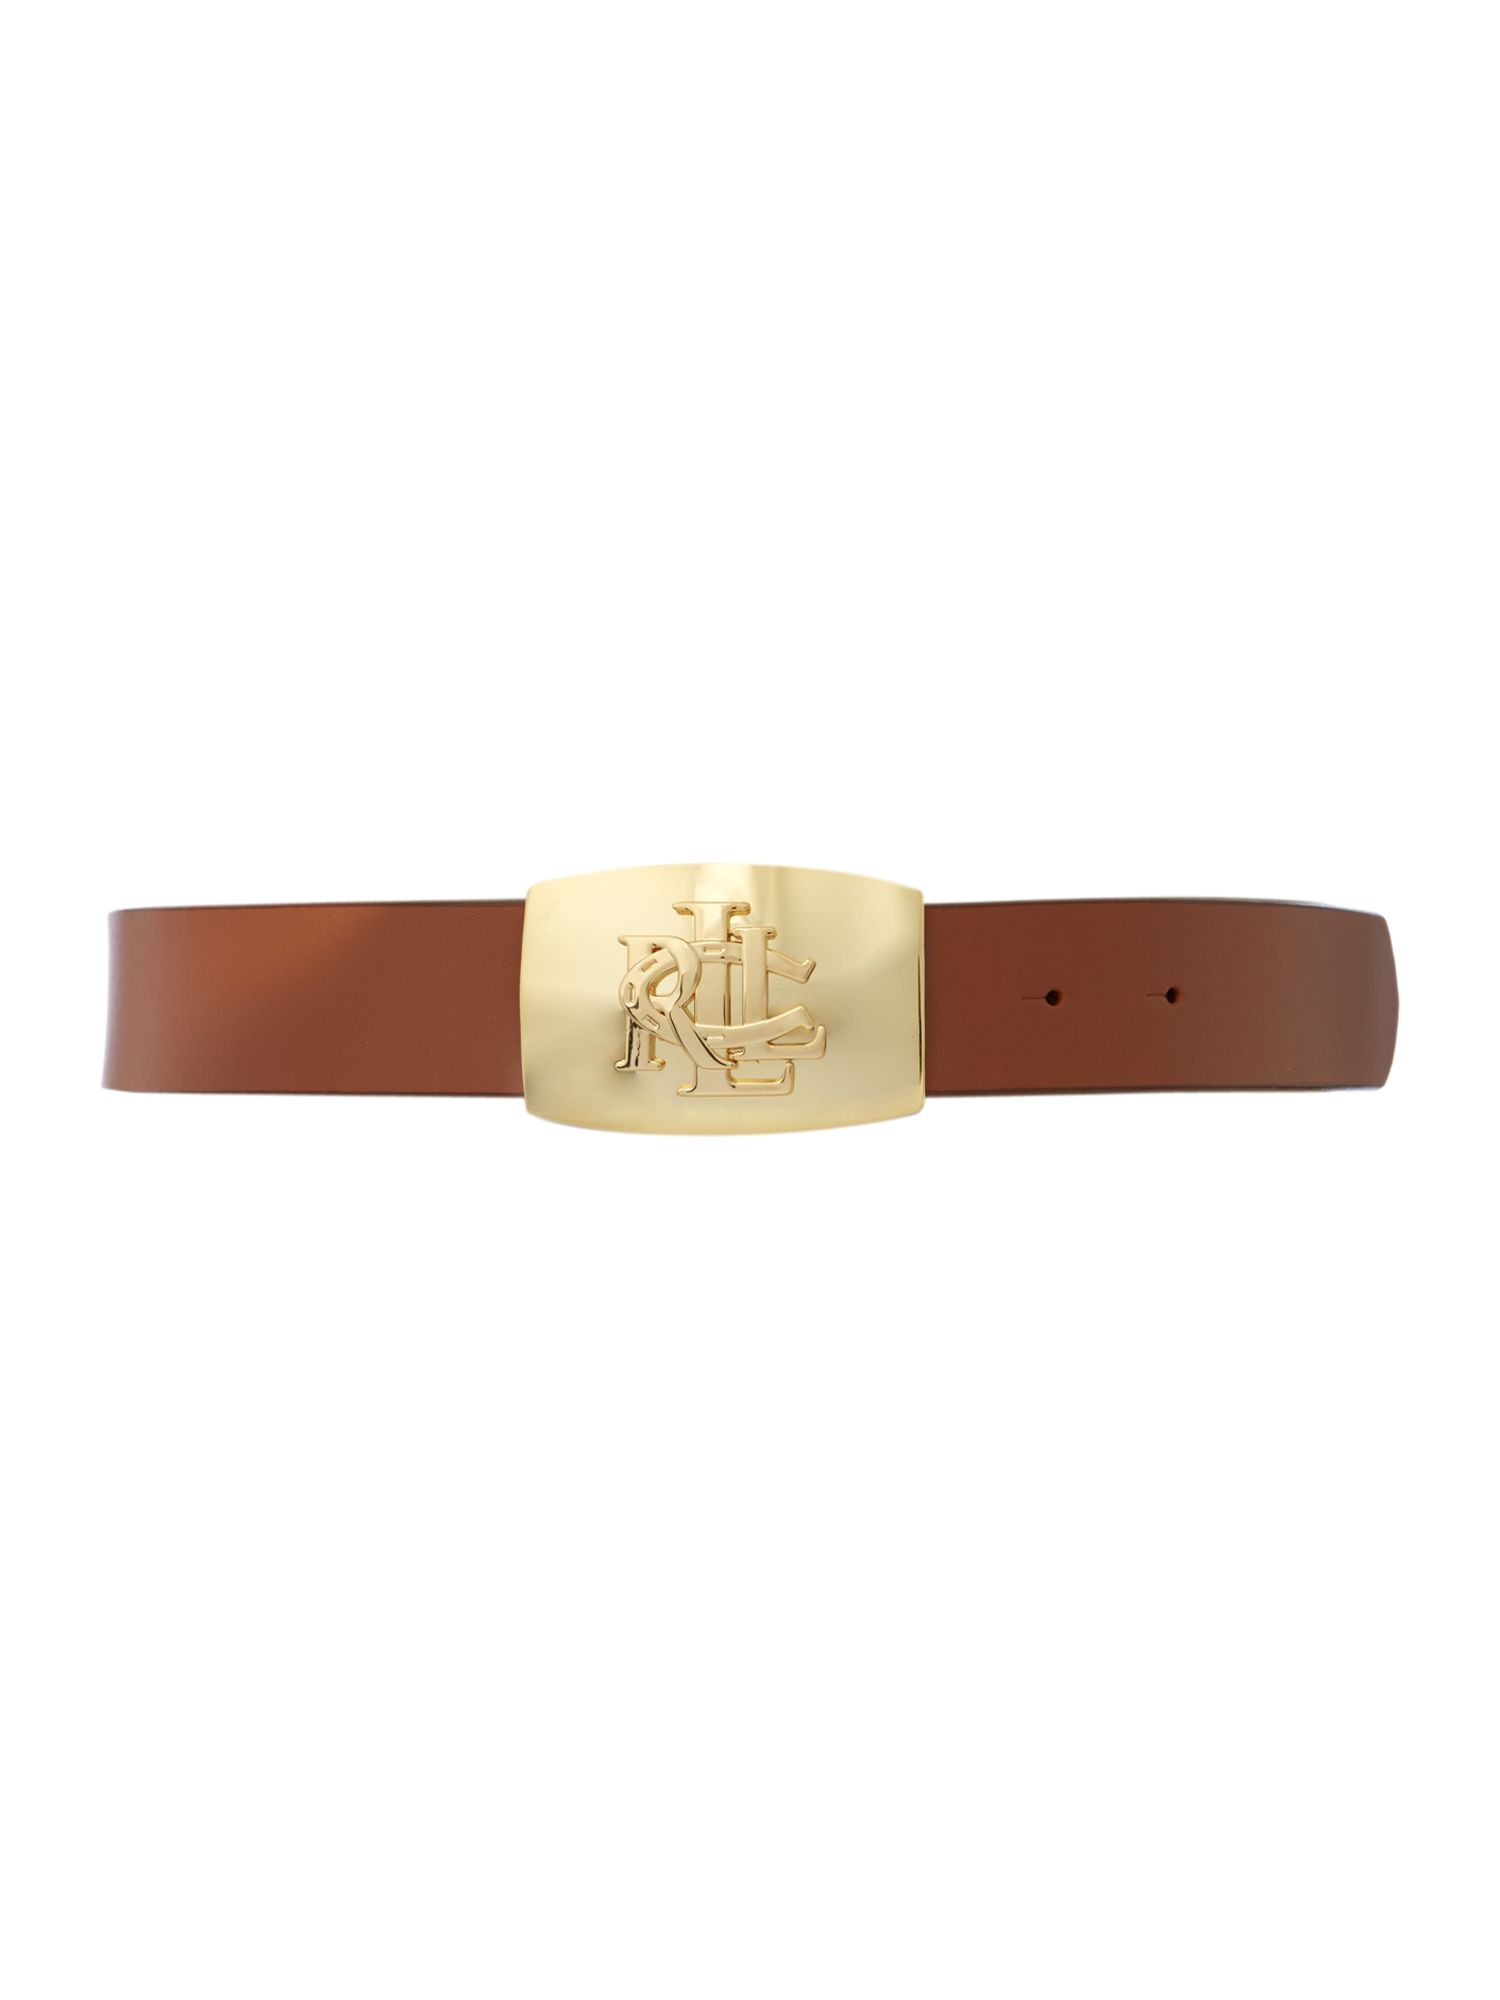 Leather belt with debossed logo plaque